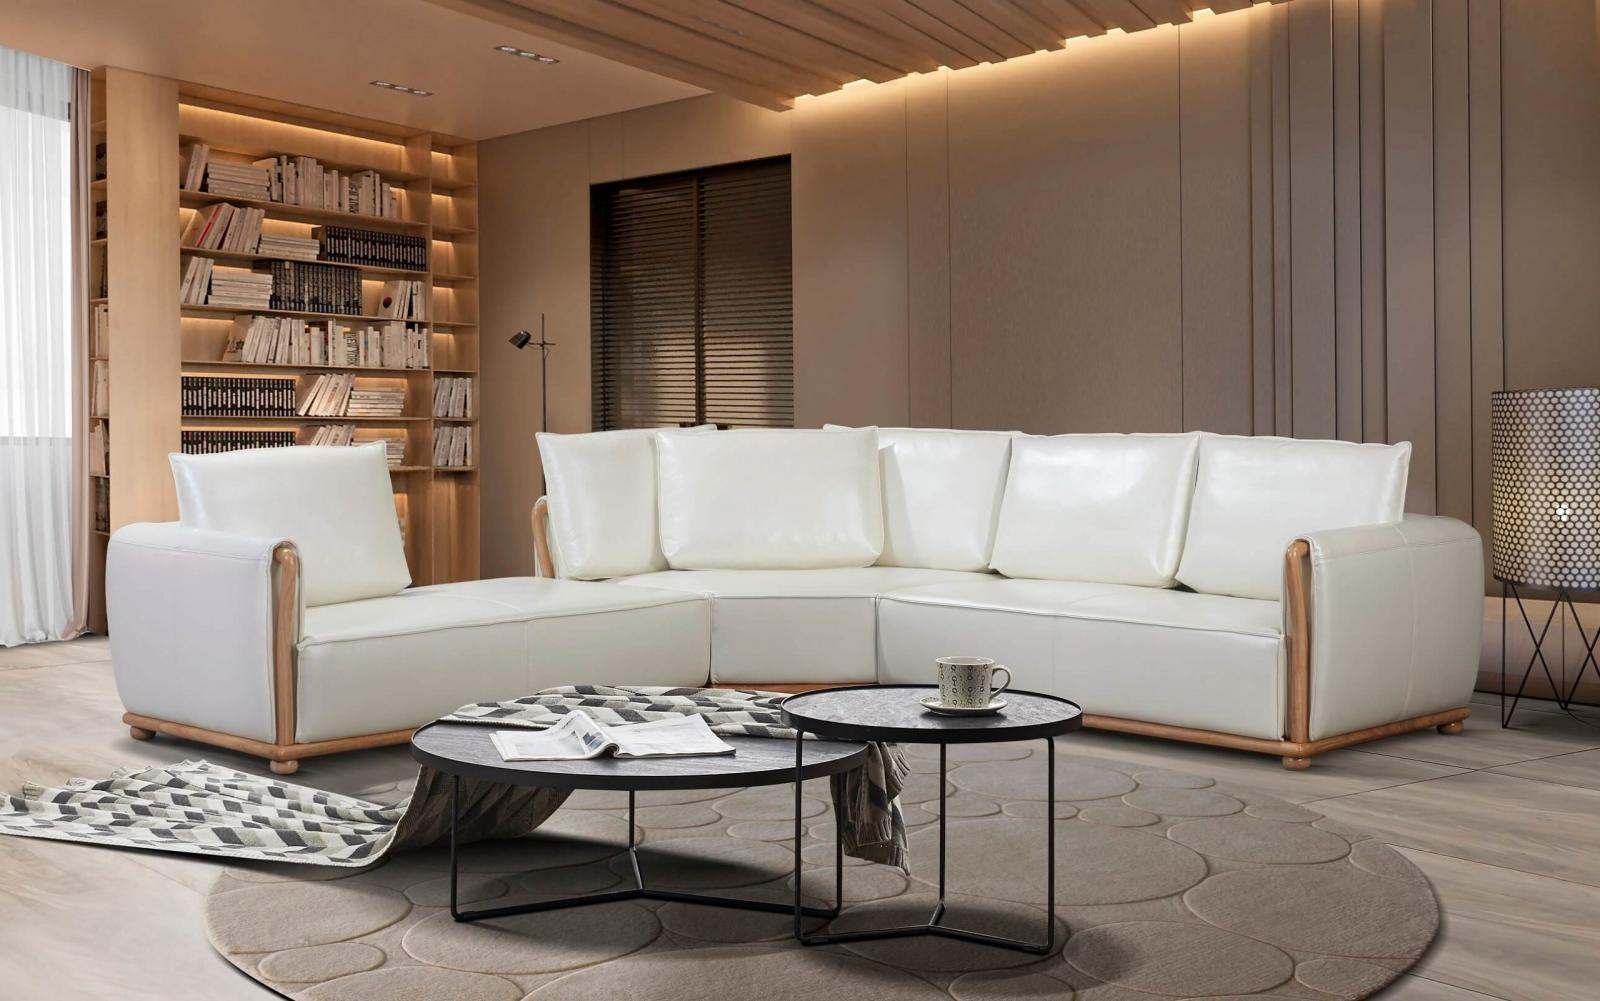 Modern  Vintage Off-White Wood  Genuine leather  Solid Hardwood and Italian Leather Sectional Sofa EUROPEAN FURNITURE EF-26661